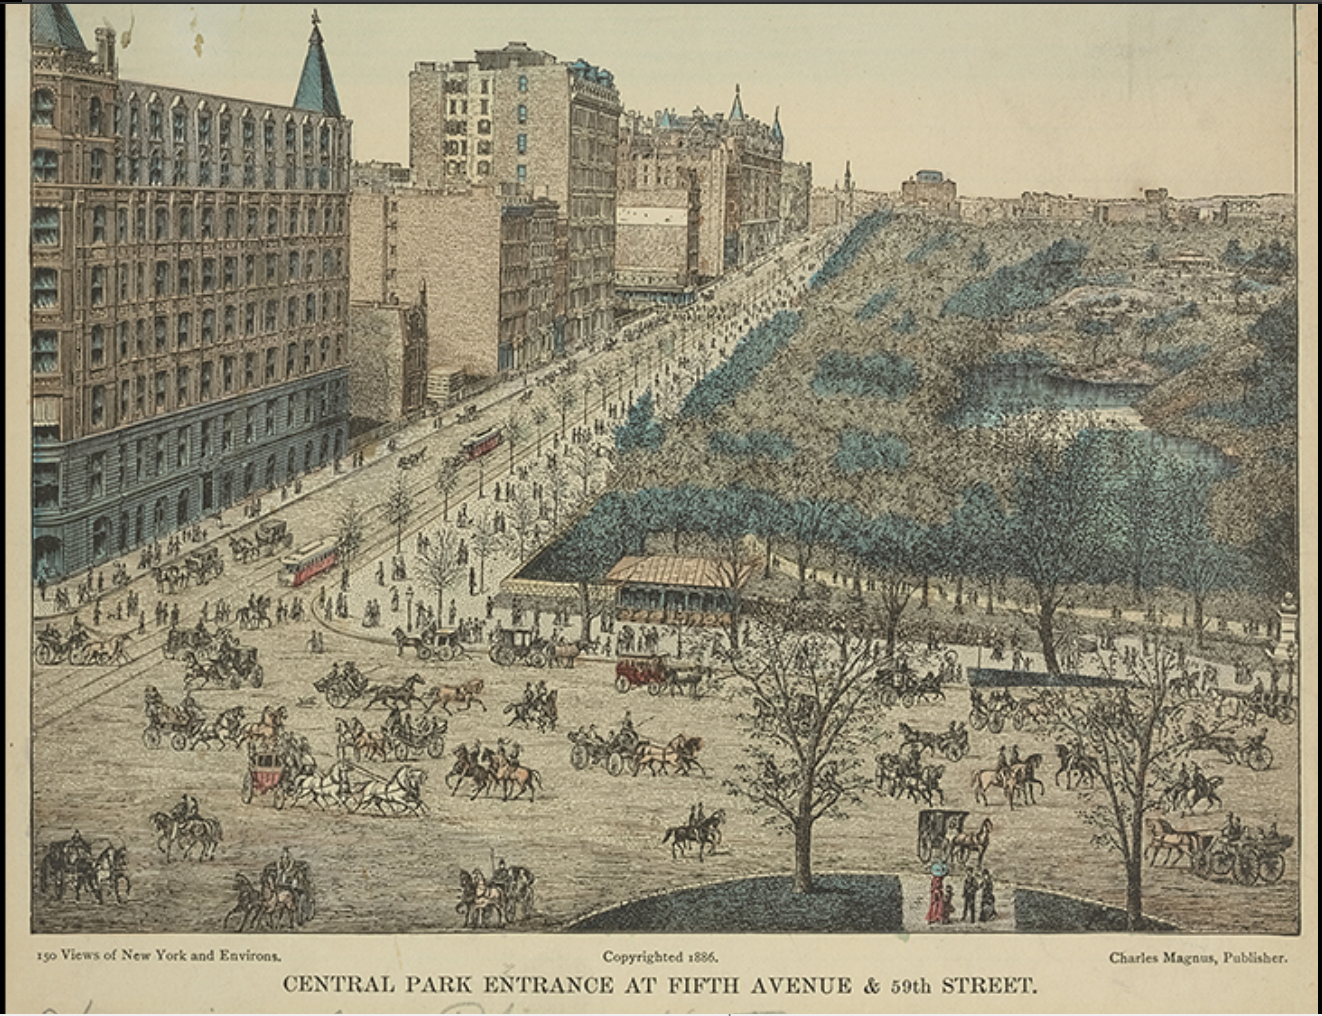 1886-central-park-entrance-at-fifth-avenue-and-59th-streete2809d-1886-nypl